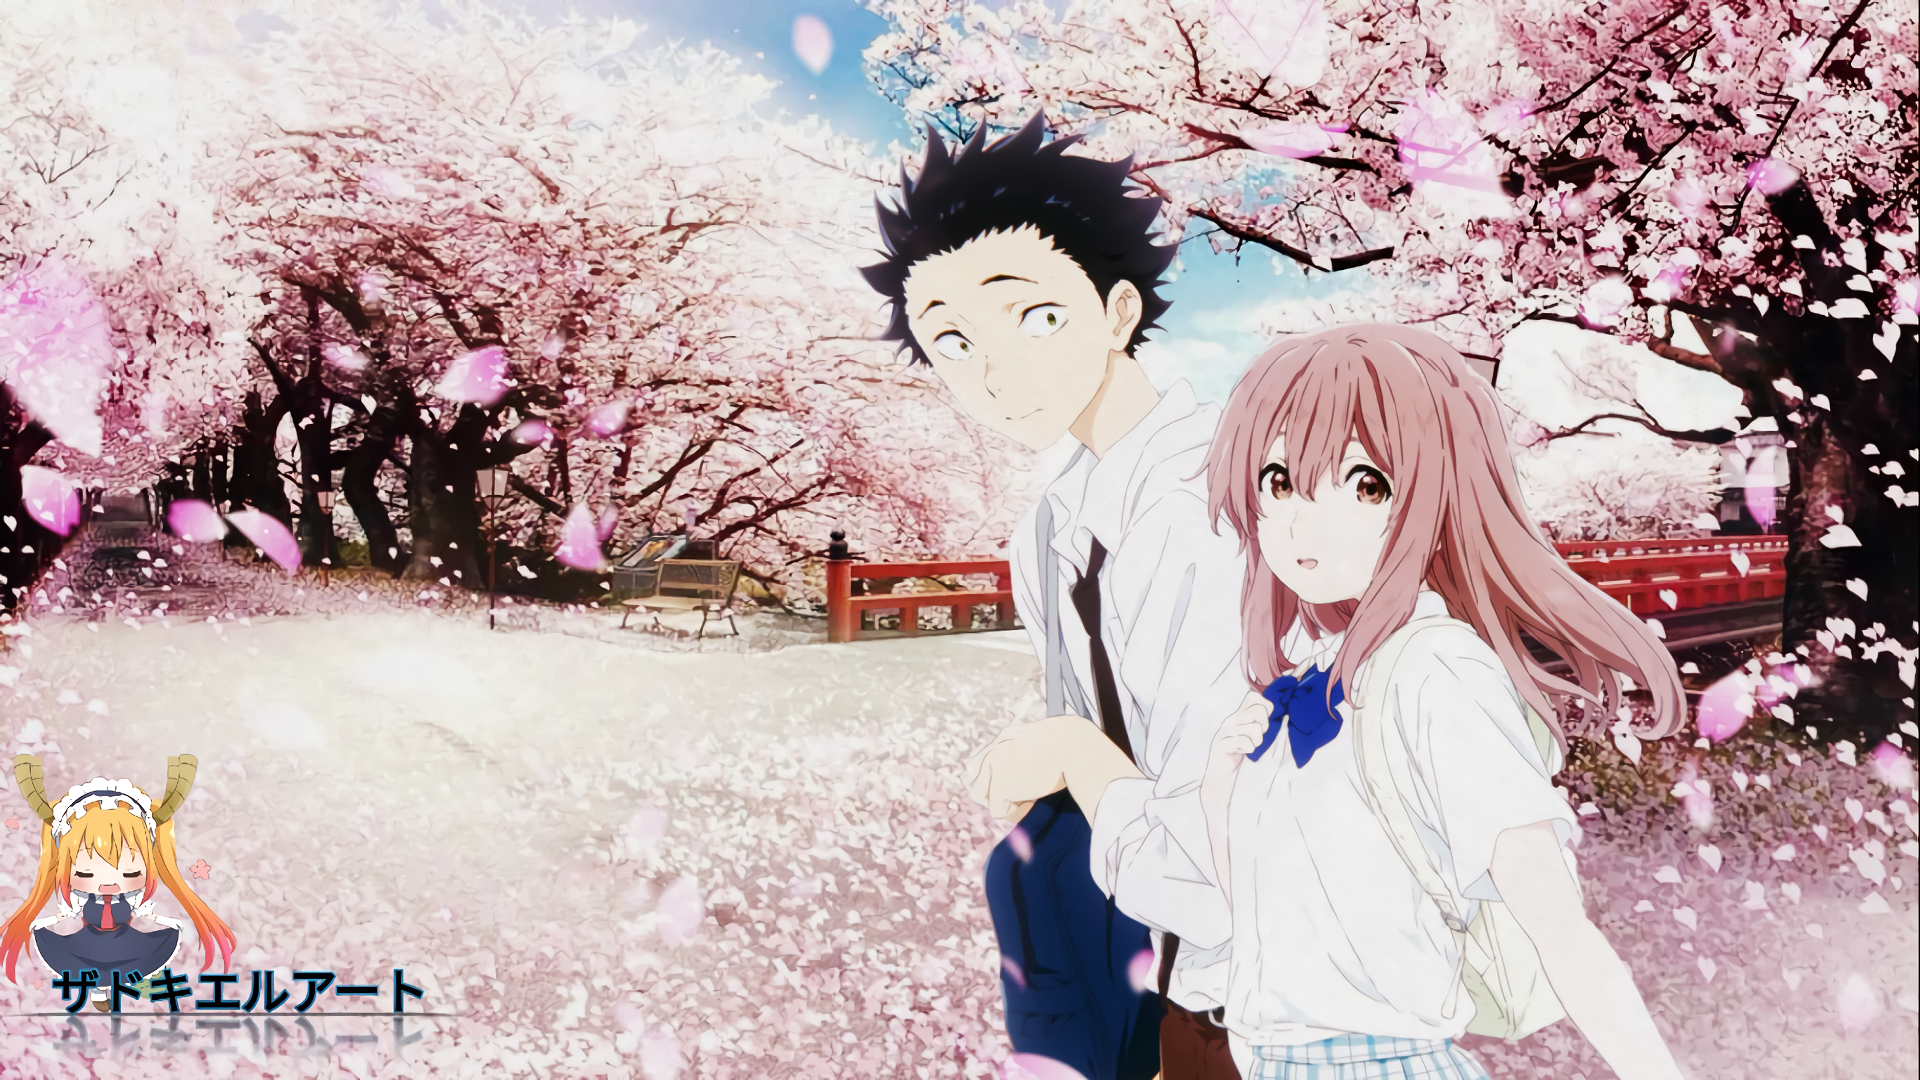 324 Koe No Katachi Hd Wallpapers Background Images Wallpaper Abyss